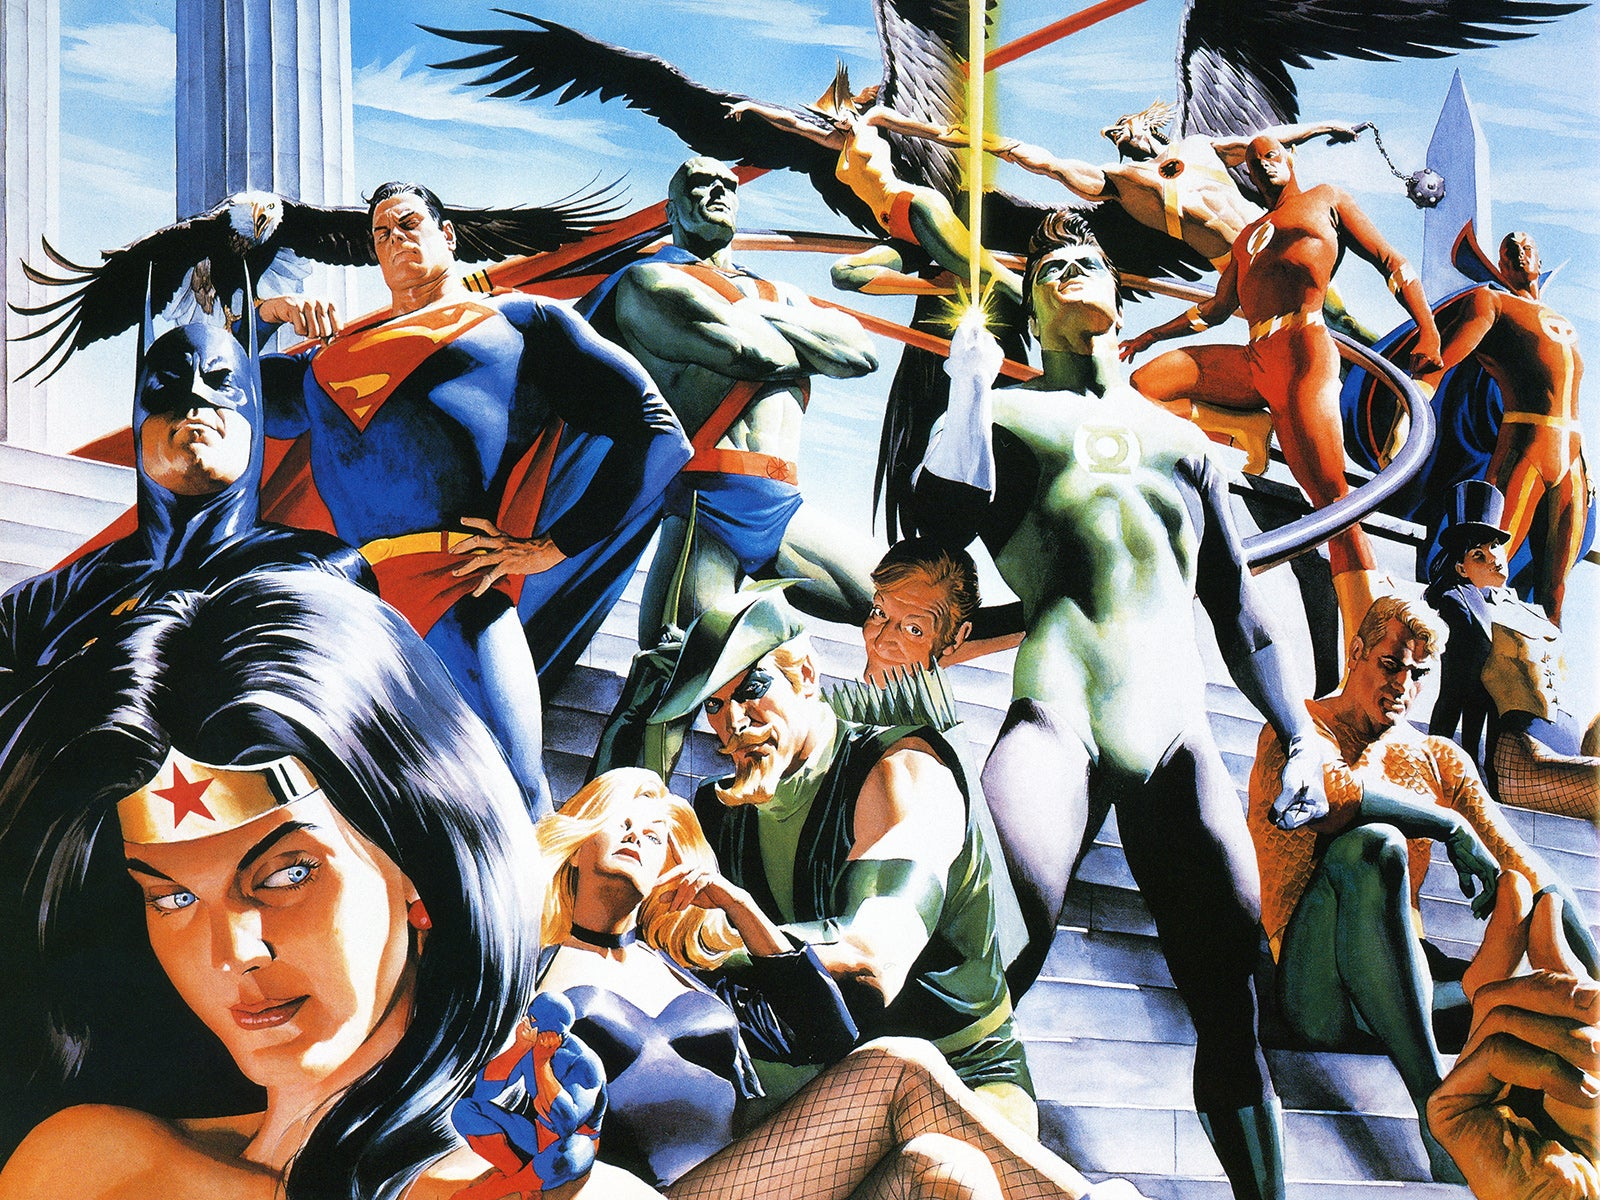 Briefly: 82 Free Ebooks, Justice League: The Movie, How Google's Founder Triumphed